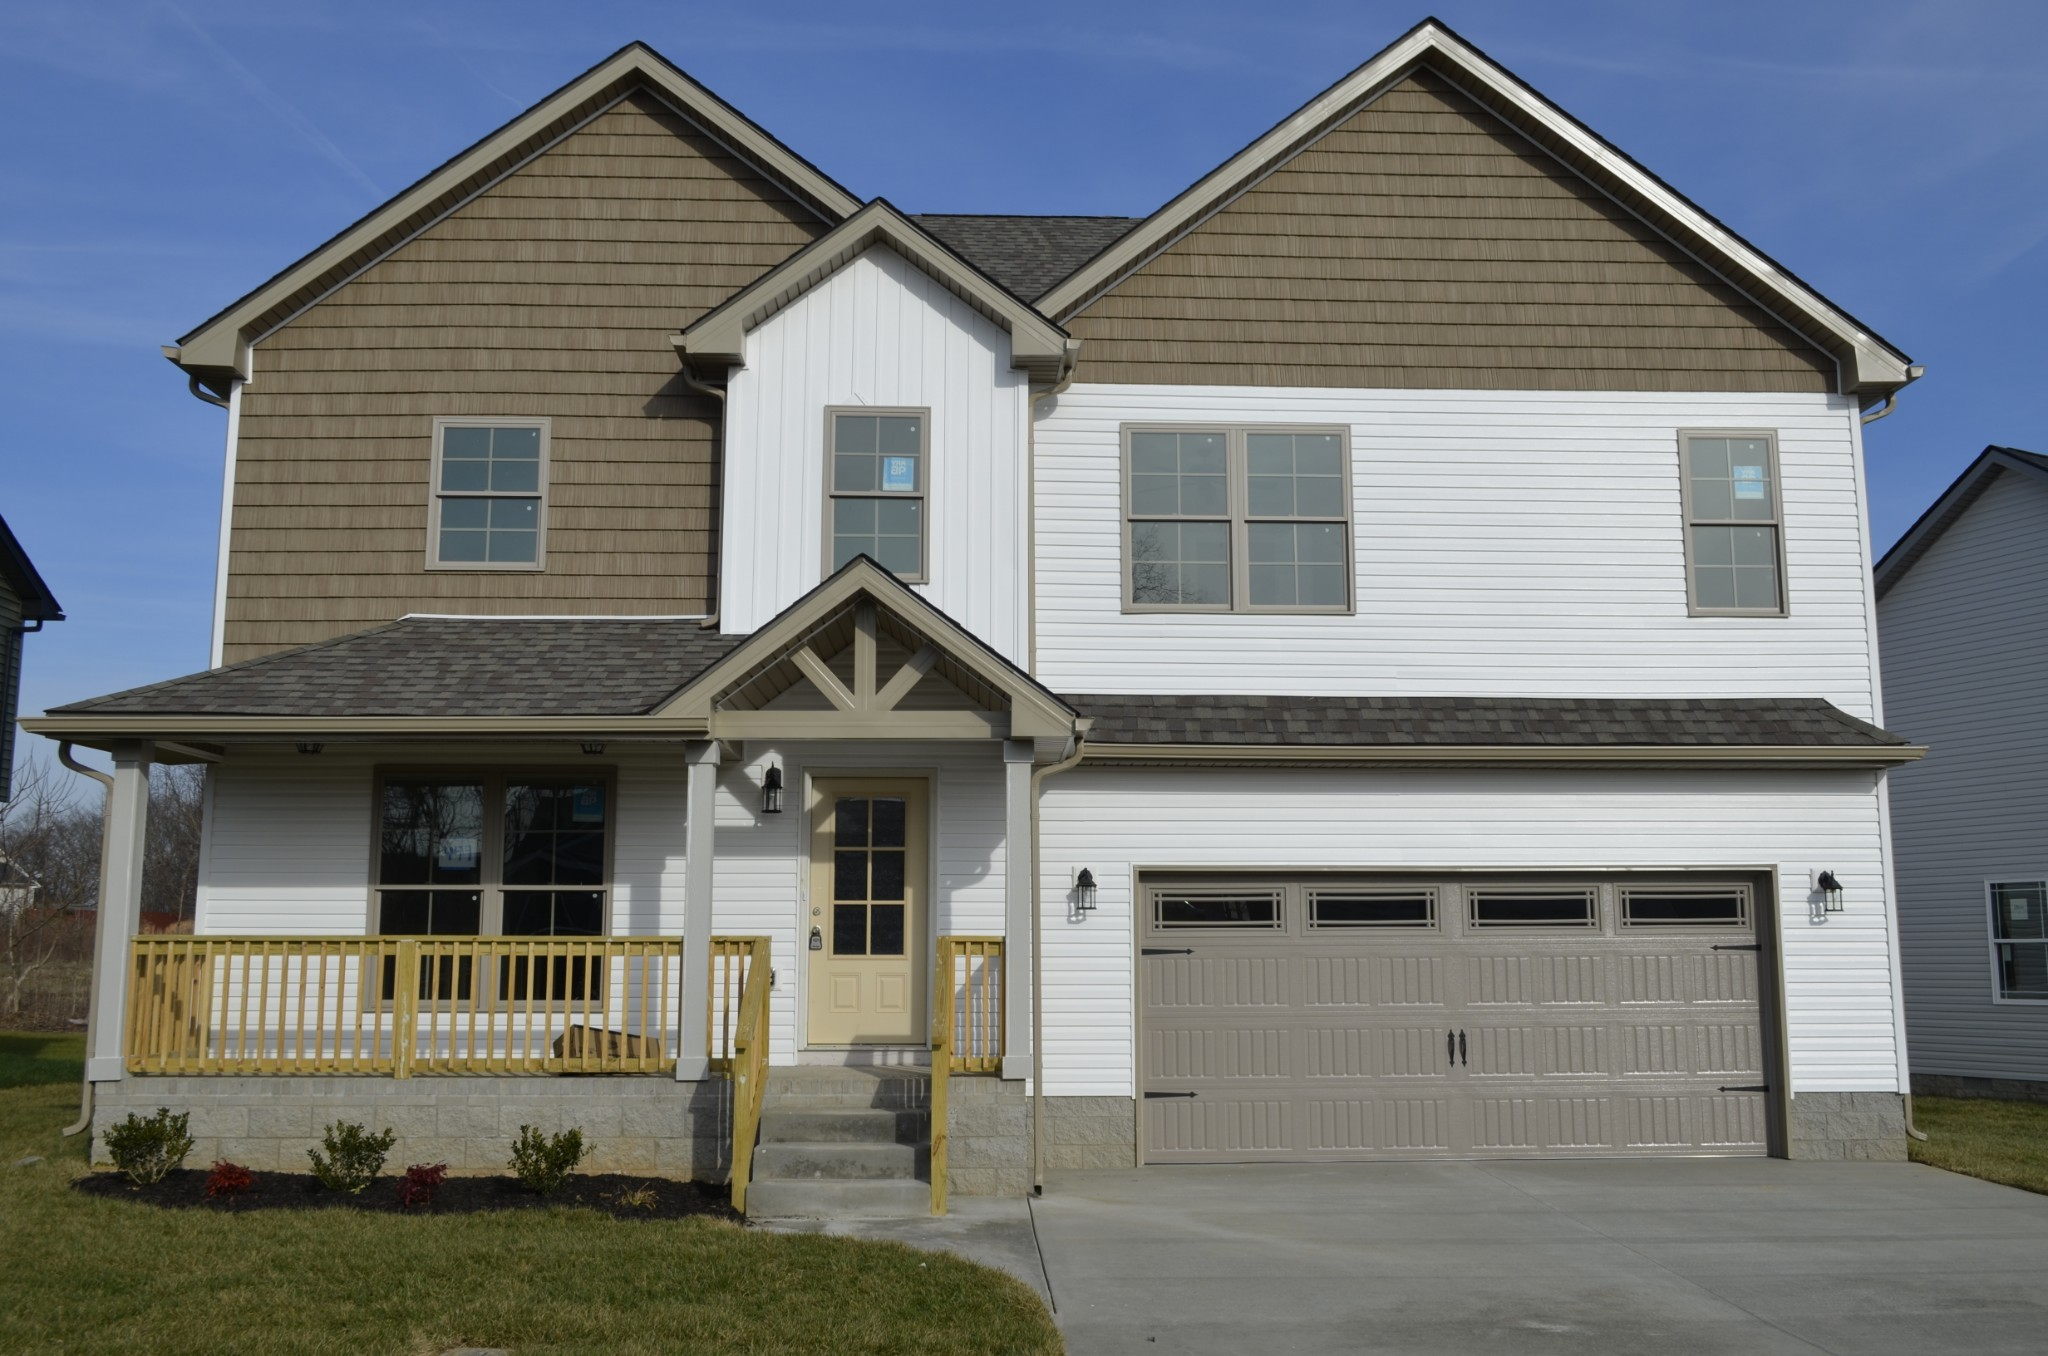 1057 Charles Thomas Dr Property Photo - Clarksville, TN real estate listing